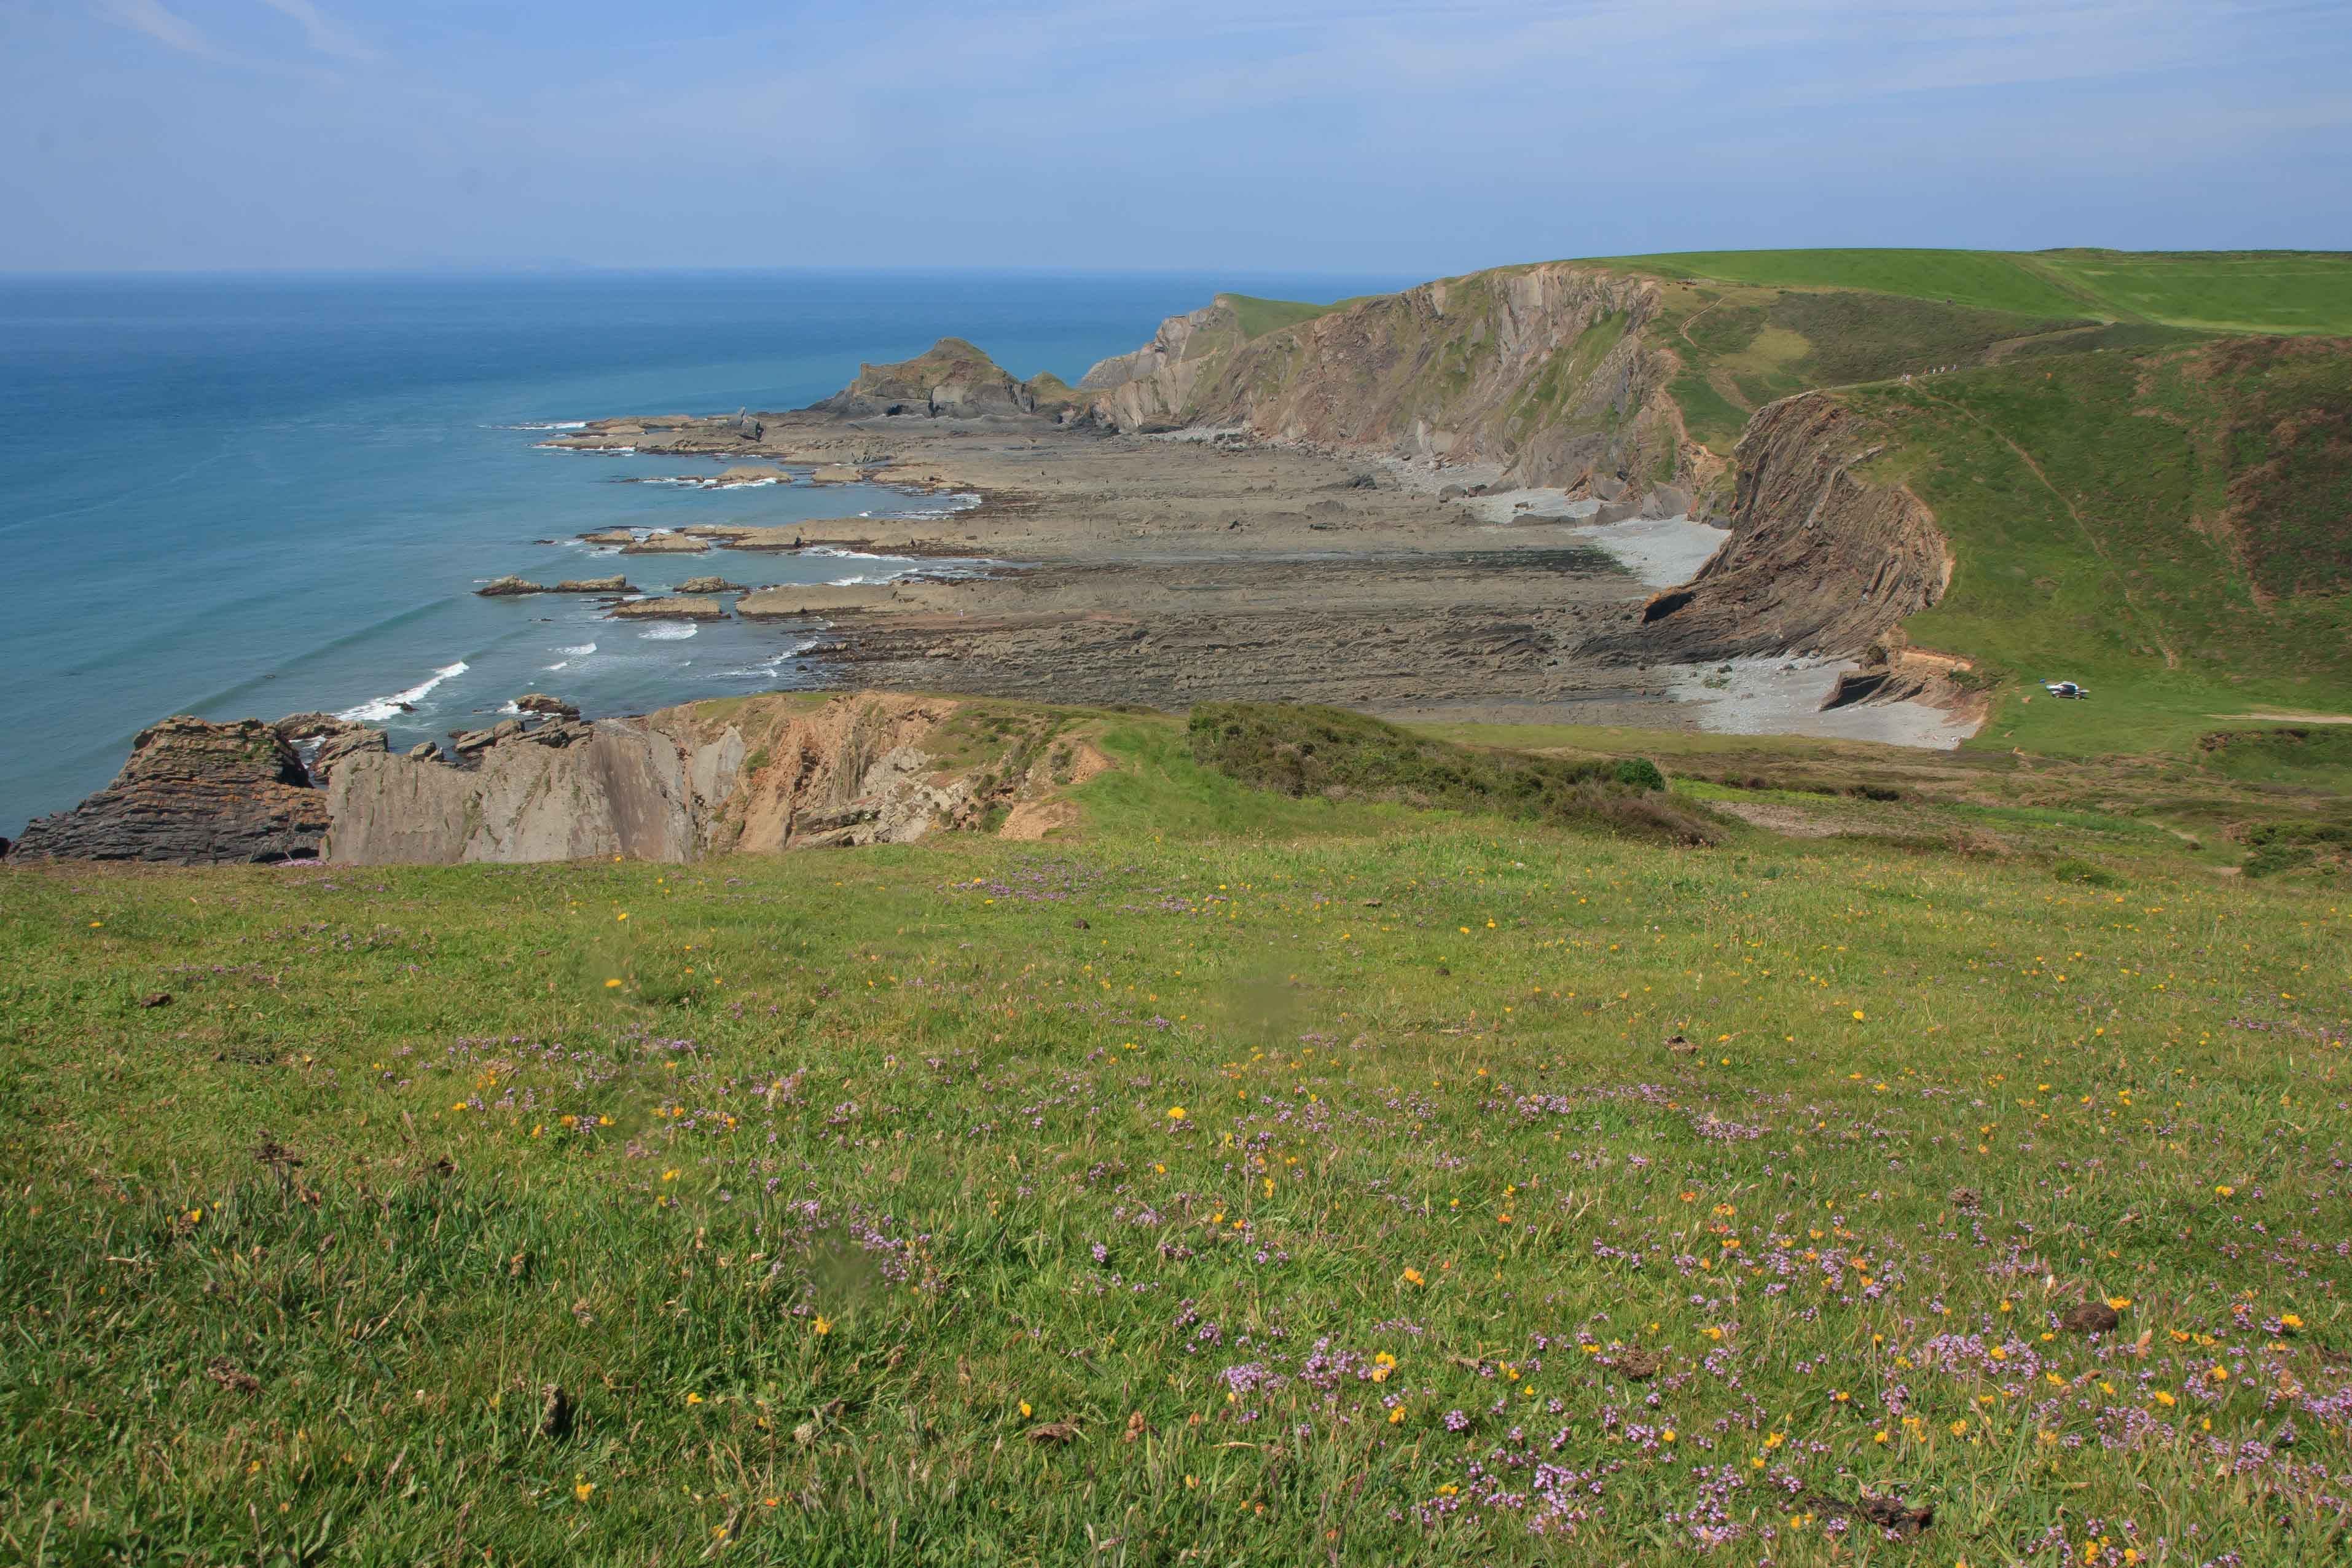 Coastline between Hartland Quay and Hartland Point